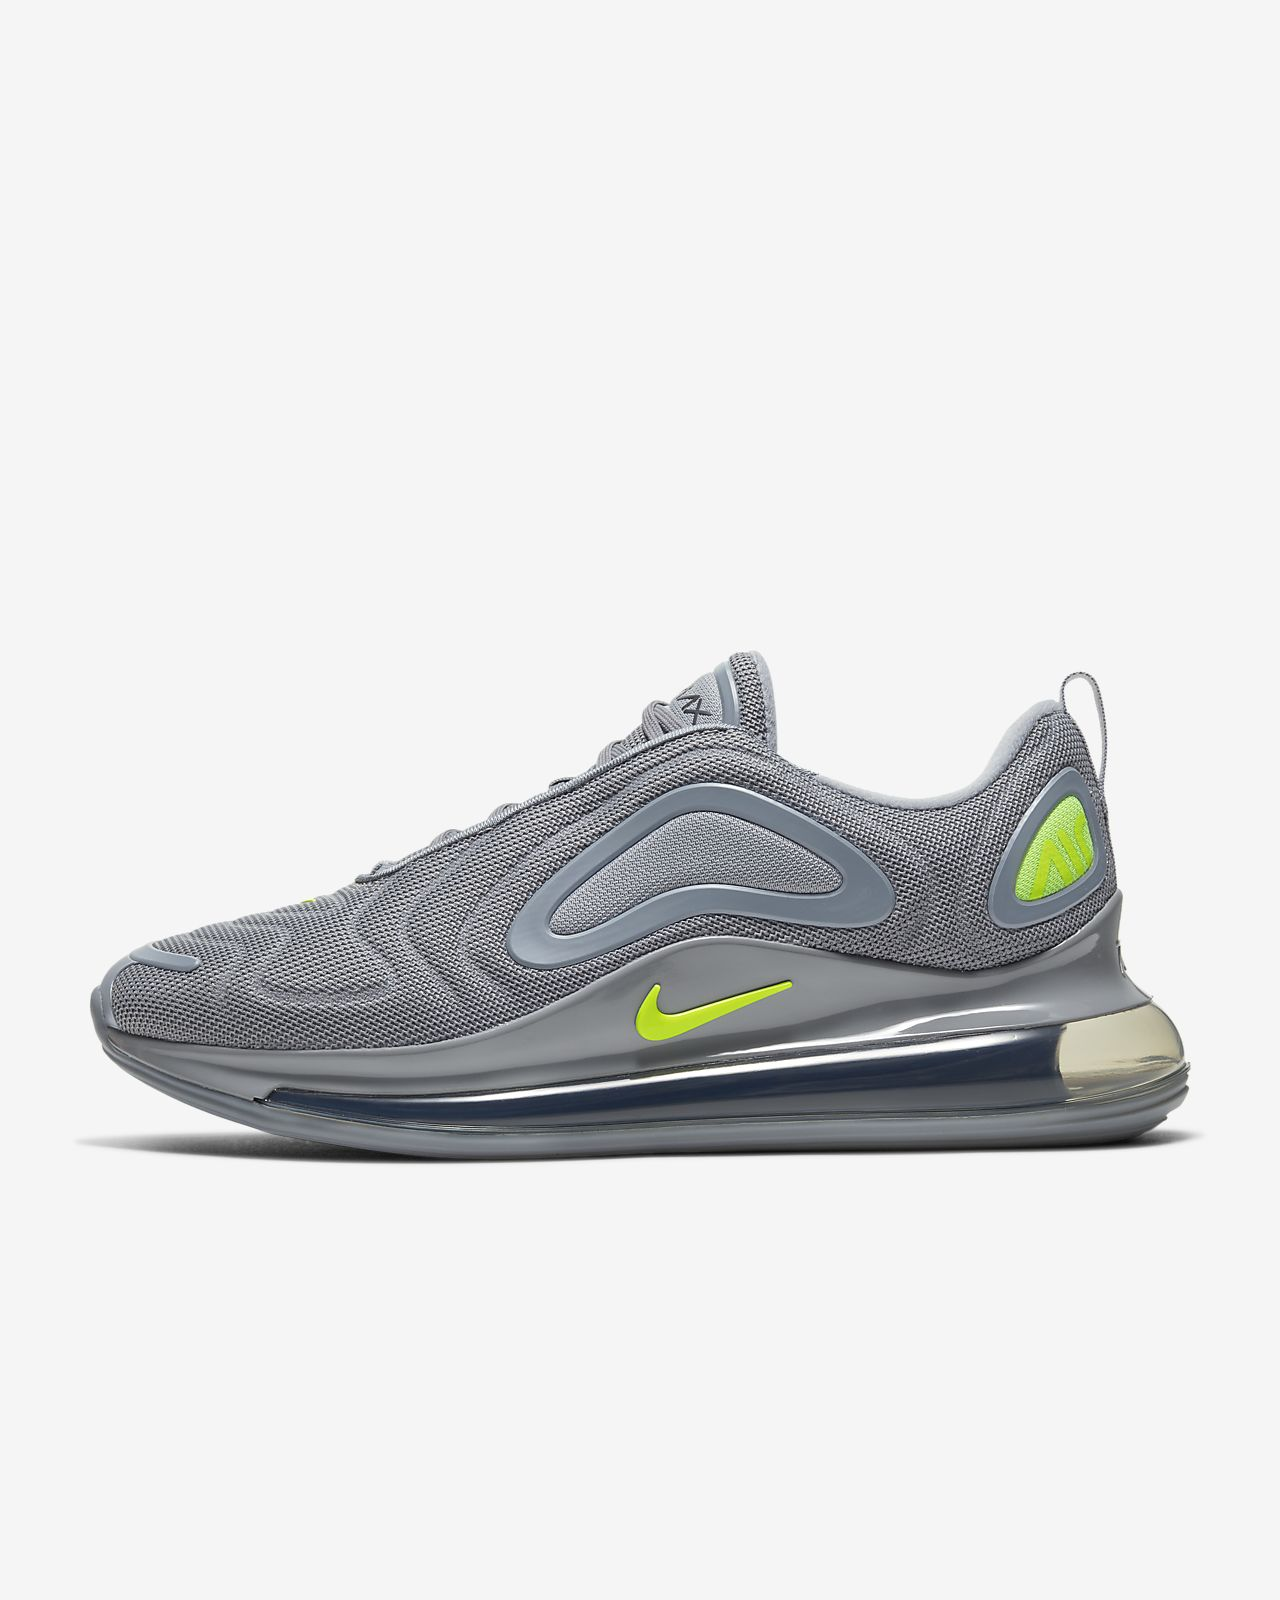 Nike Air Max 720 in Cool Grey Volt Electric Green